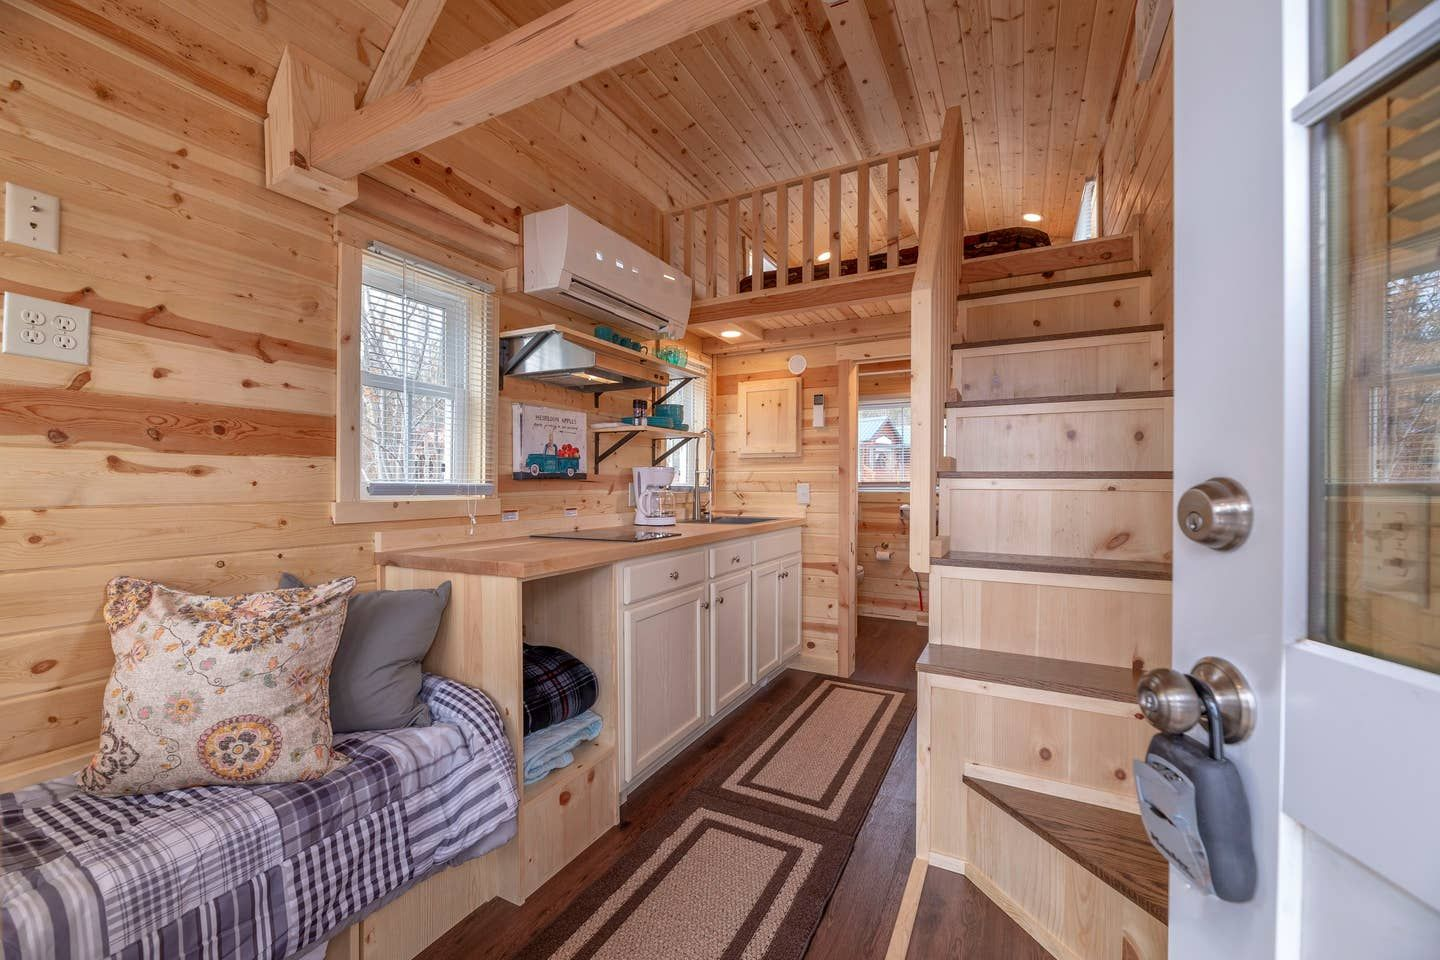 20 Tiny Houses In Colorado You Can Rent On Airbnb In 2020 In 2020 Tiny House Rentals Tiny Houses For Rent Tiny House Living Room